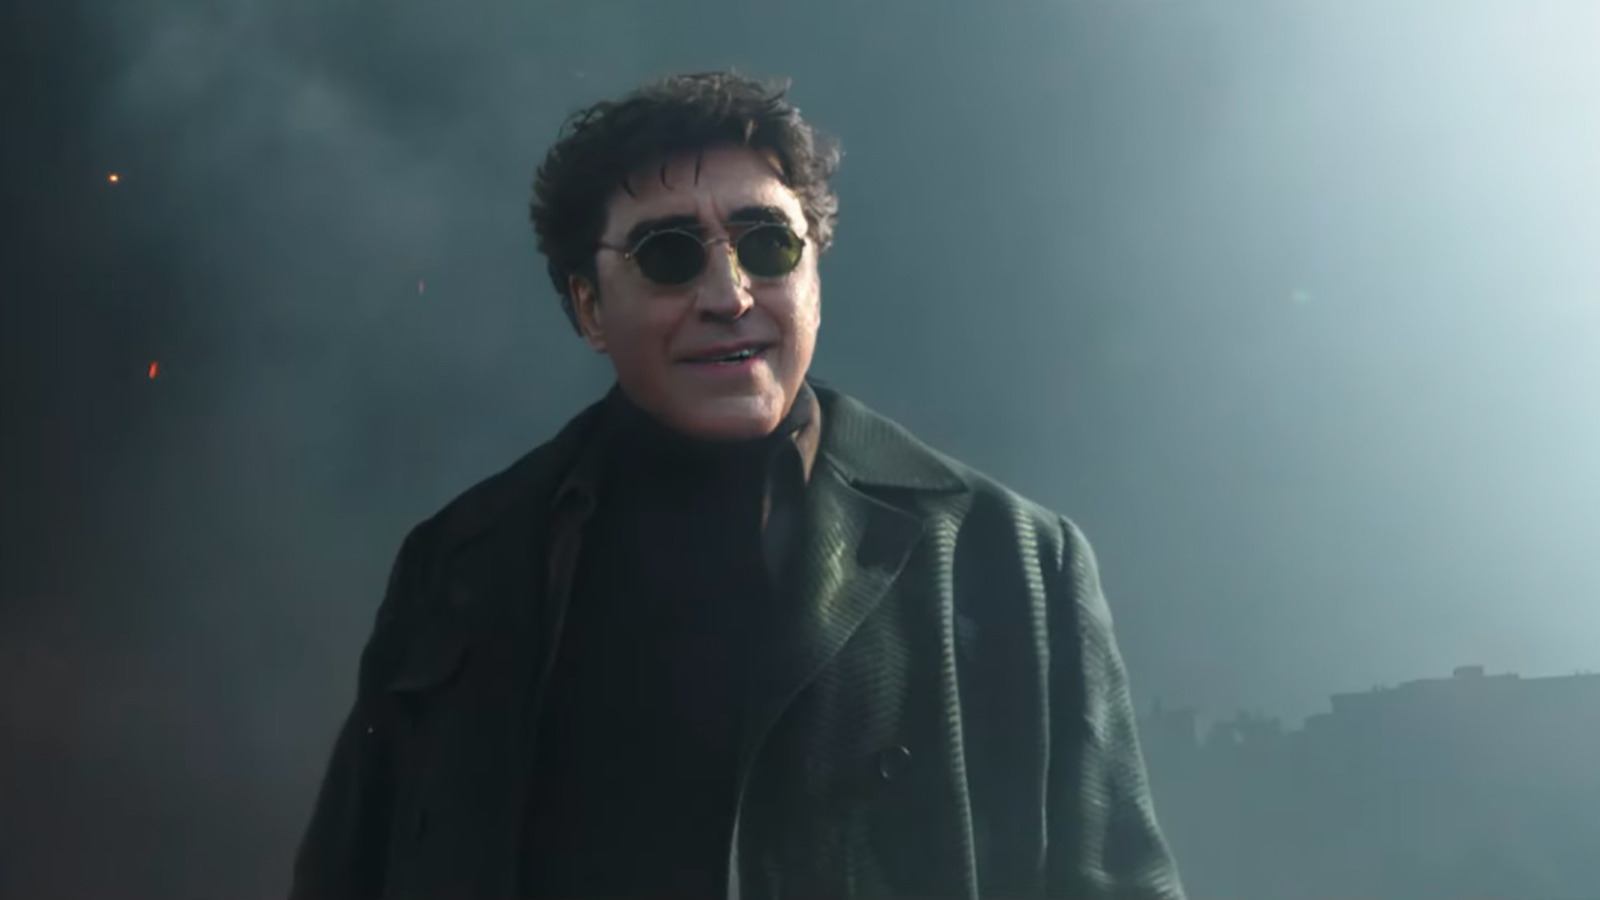 Alfred Molina as Doc Ock in Spider-Man: No Way Home